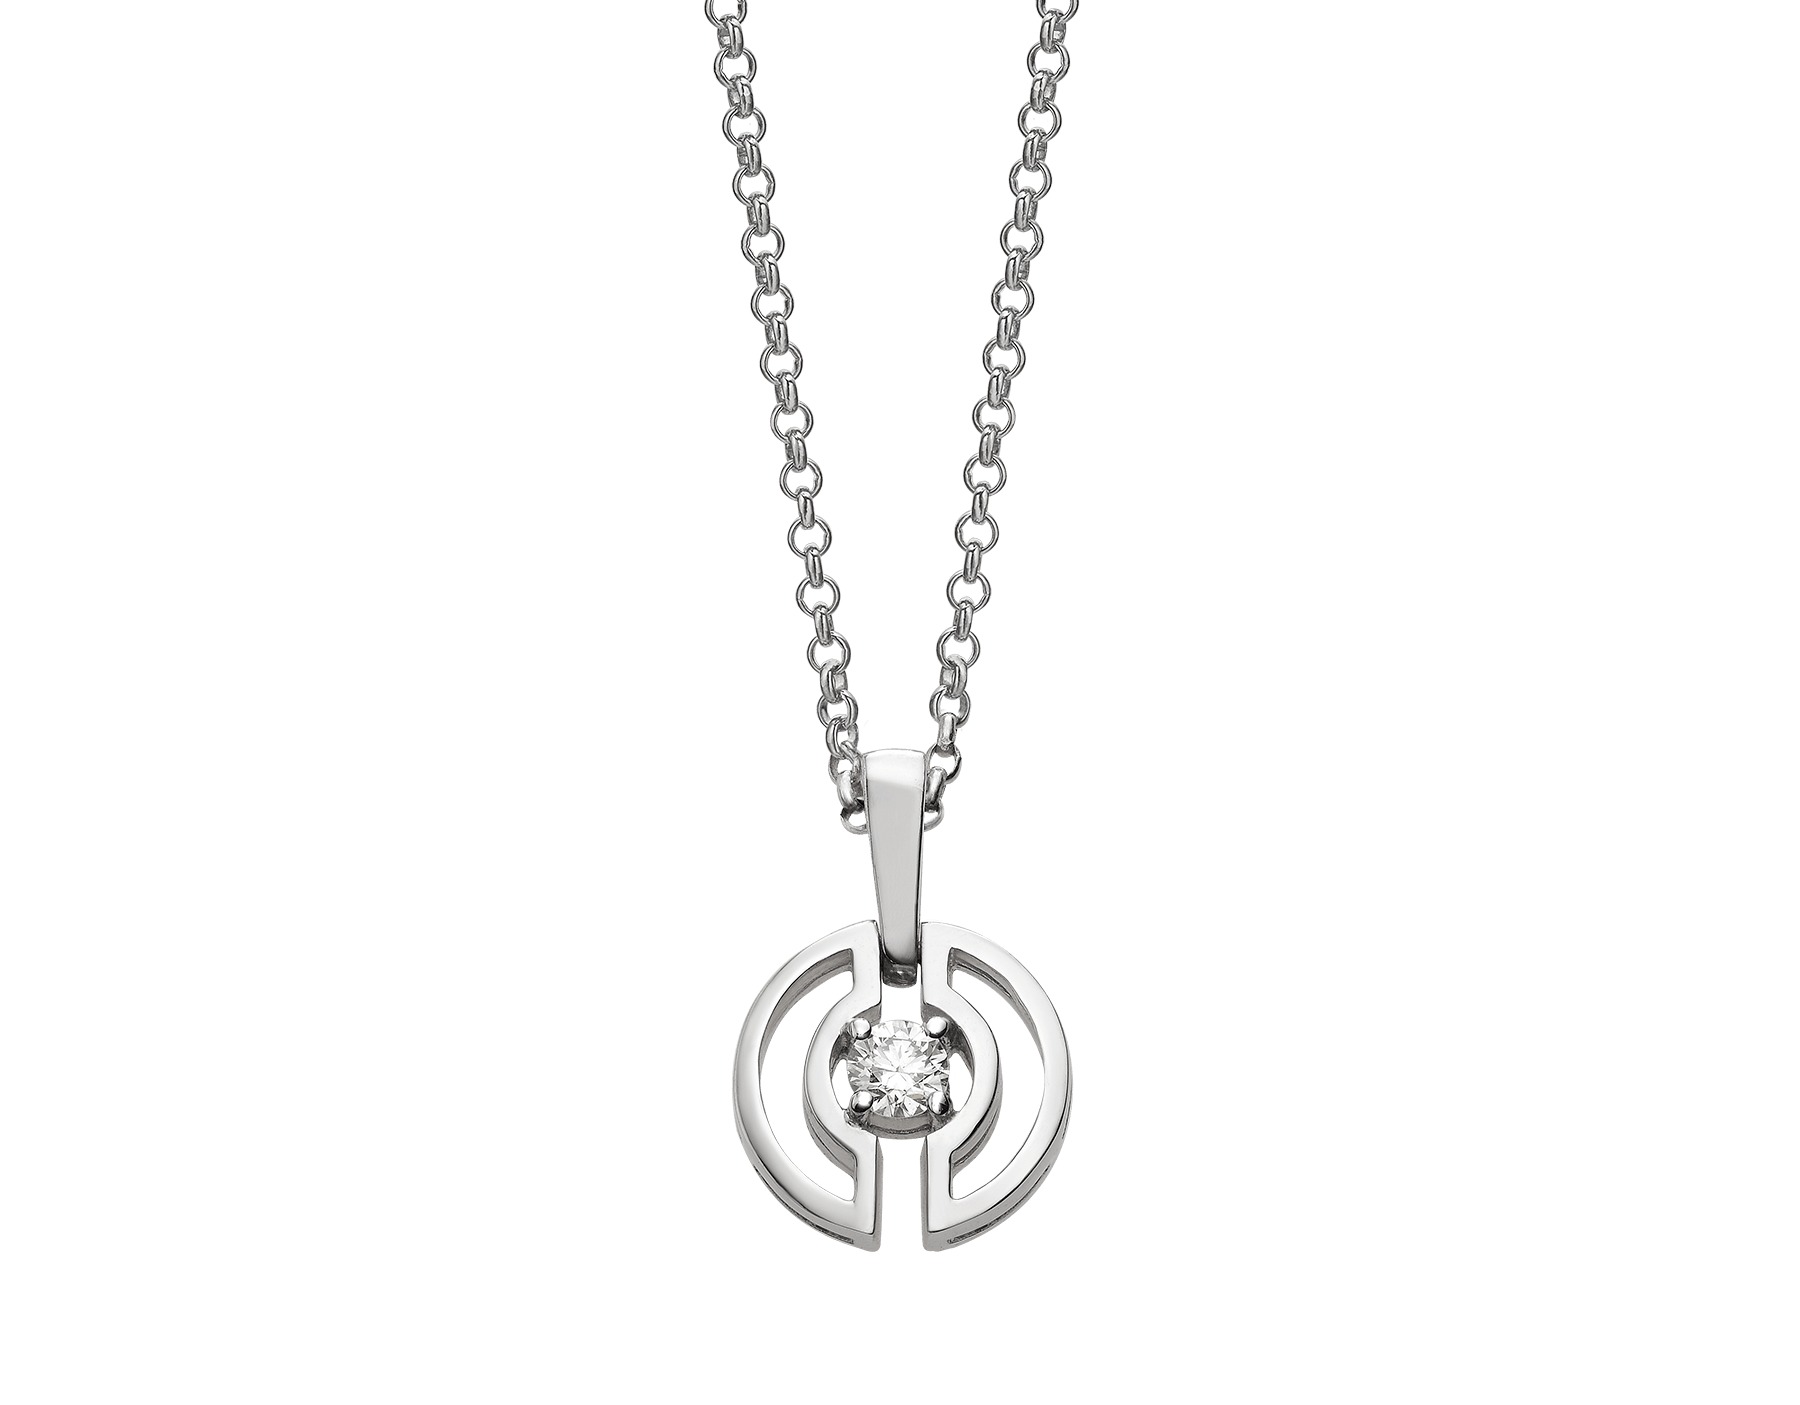 Parentesi necklace with 18 kt white gold chain and pendant, set with a central diamond. 354311 image 1